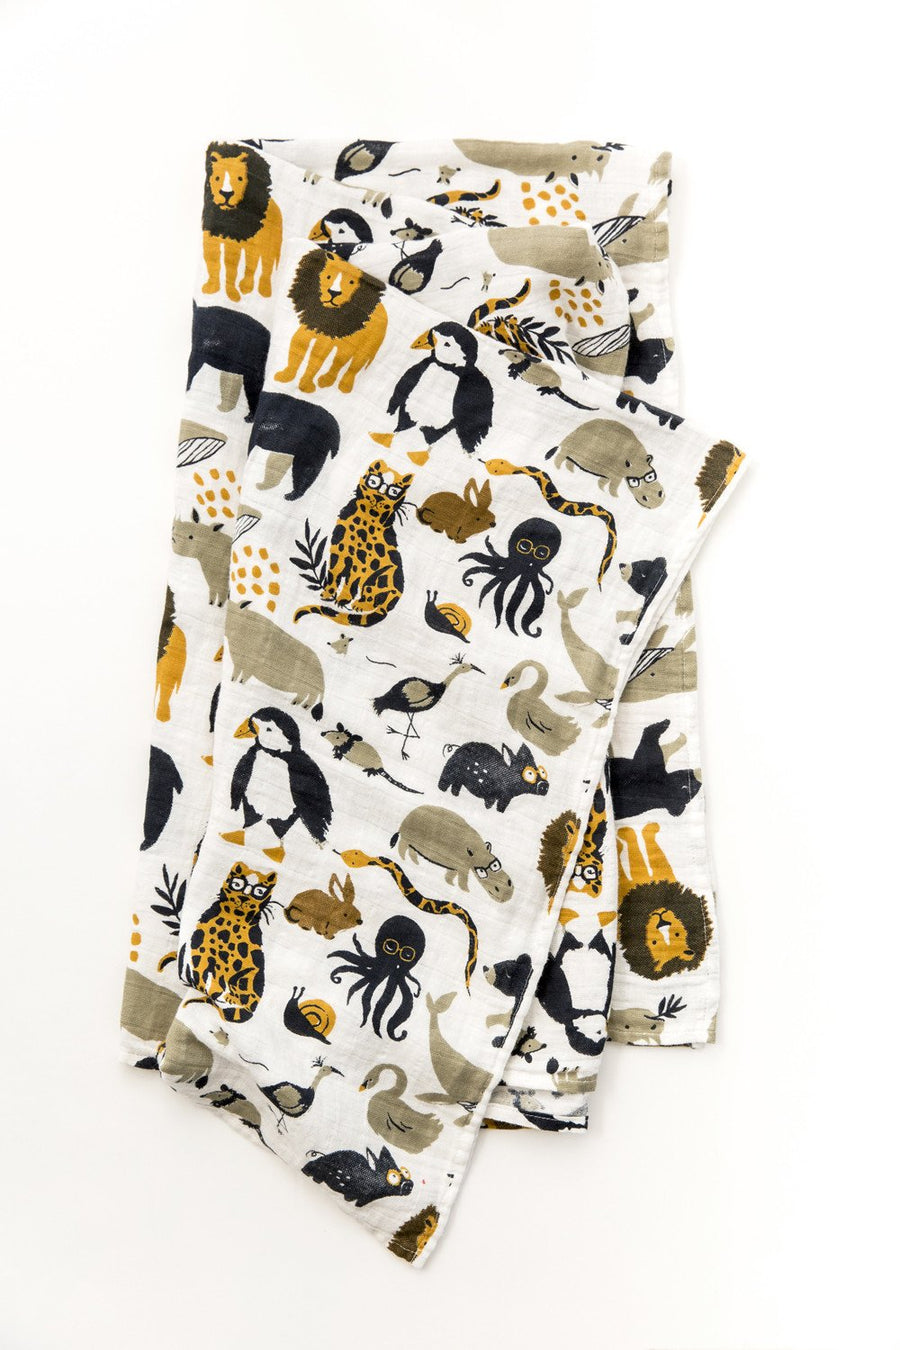 Zoology Swaddle, swaddle - Tnee's